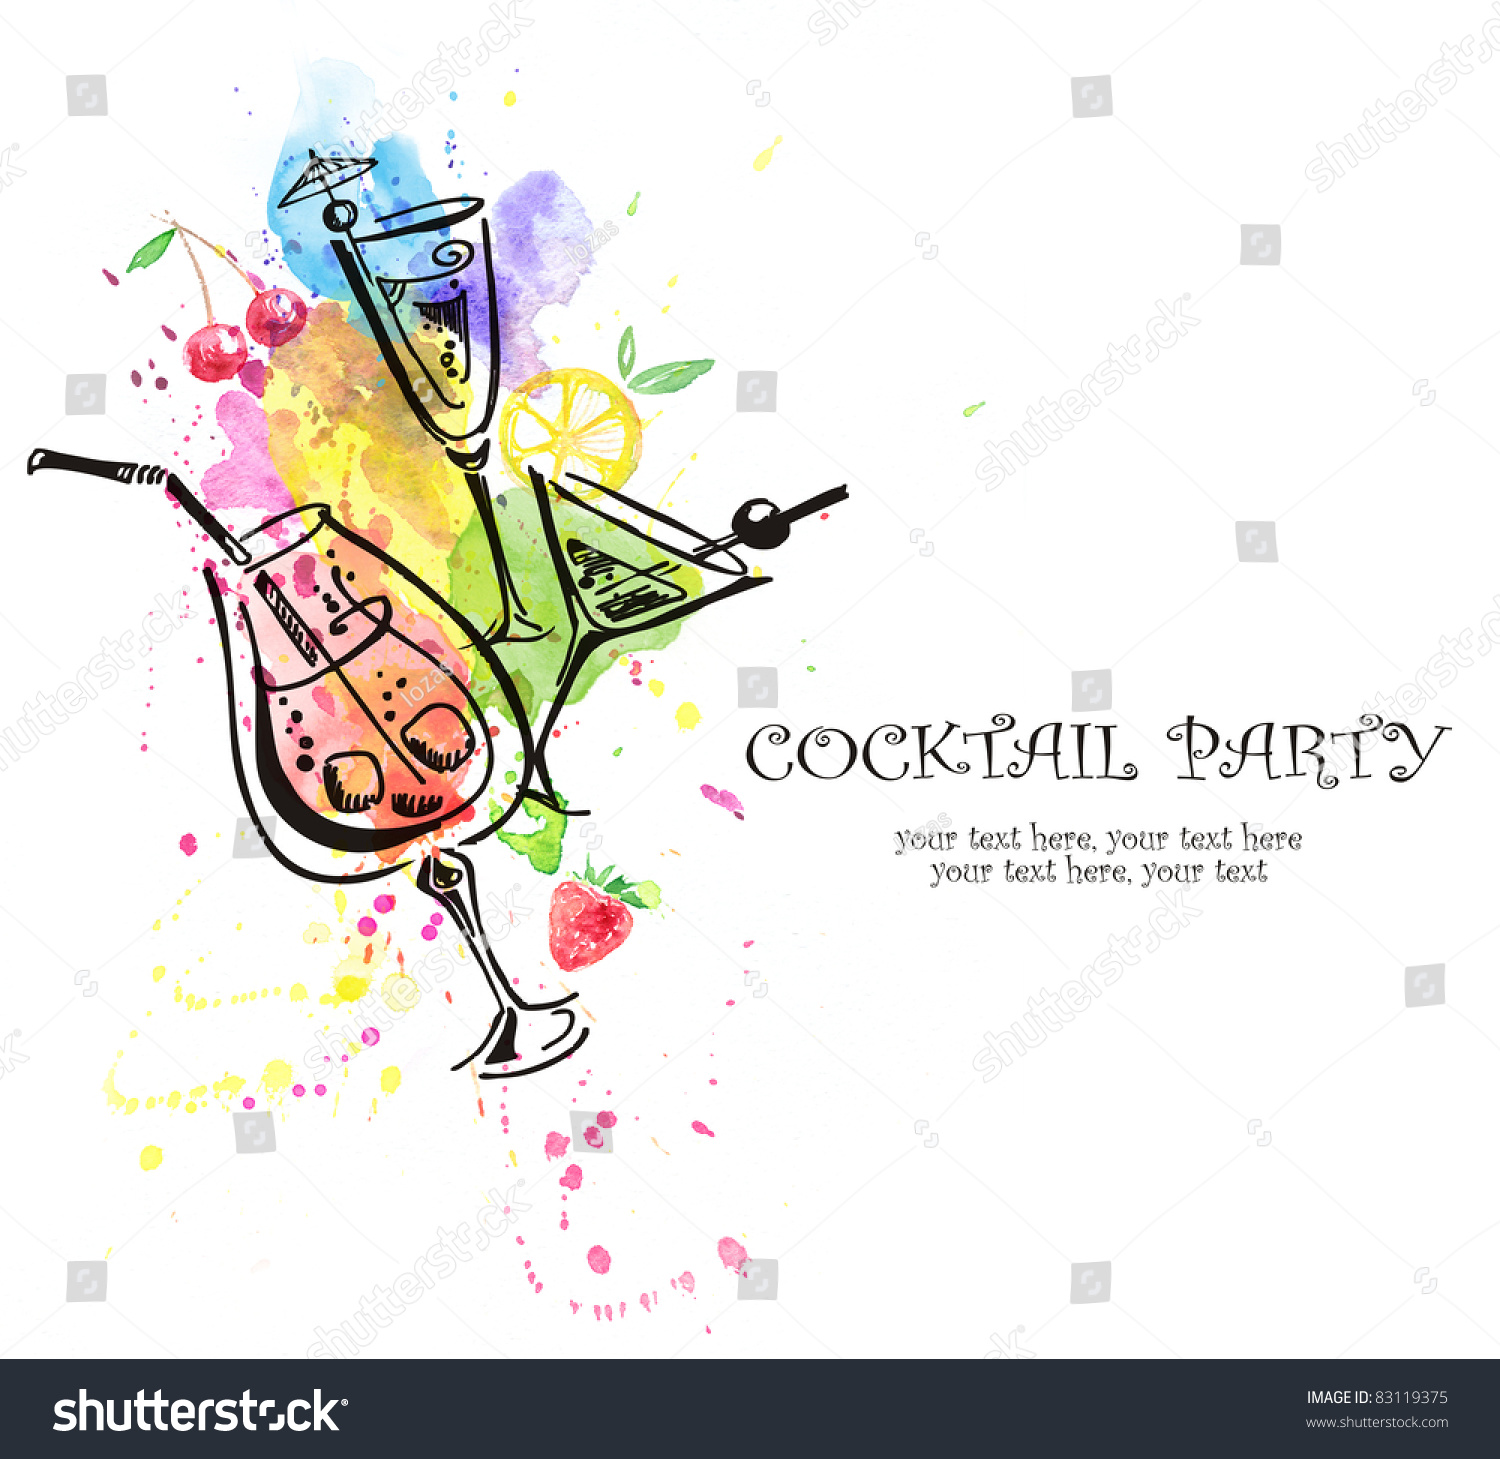 Cocktail Party Invitation Illustration 83119375 Shutterstock – Coctail Party Invitation